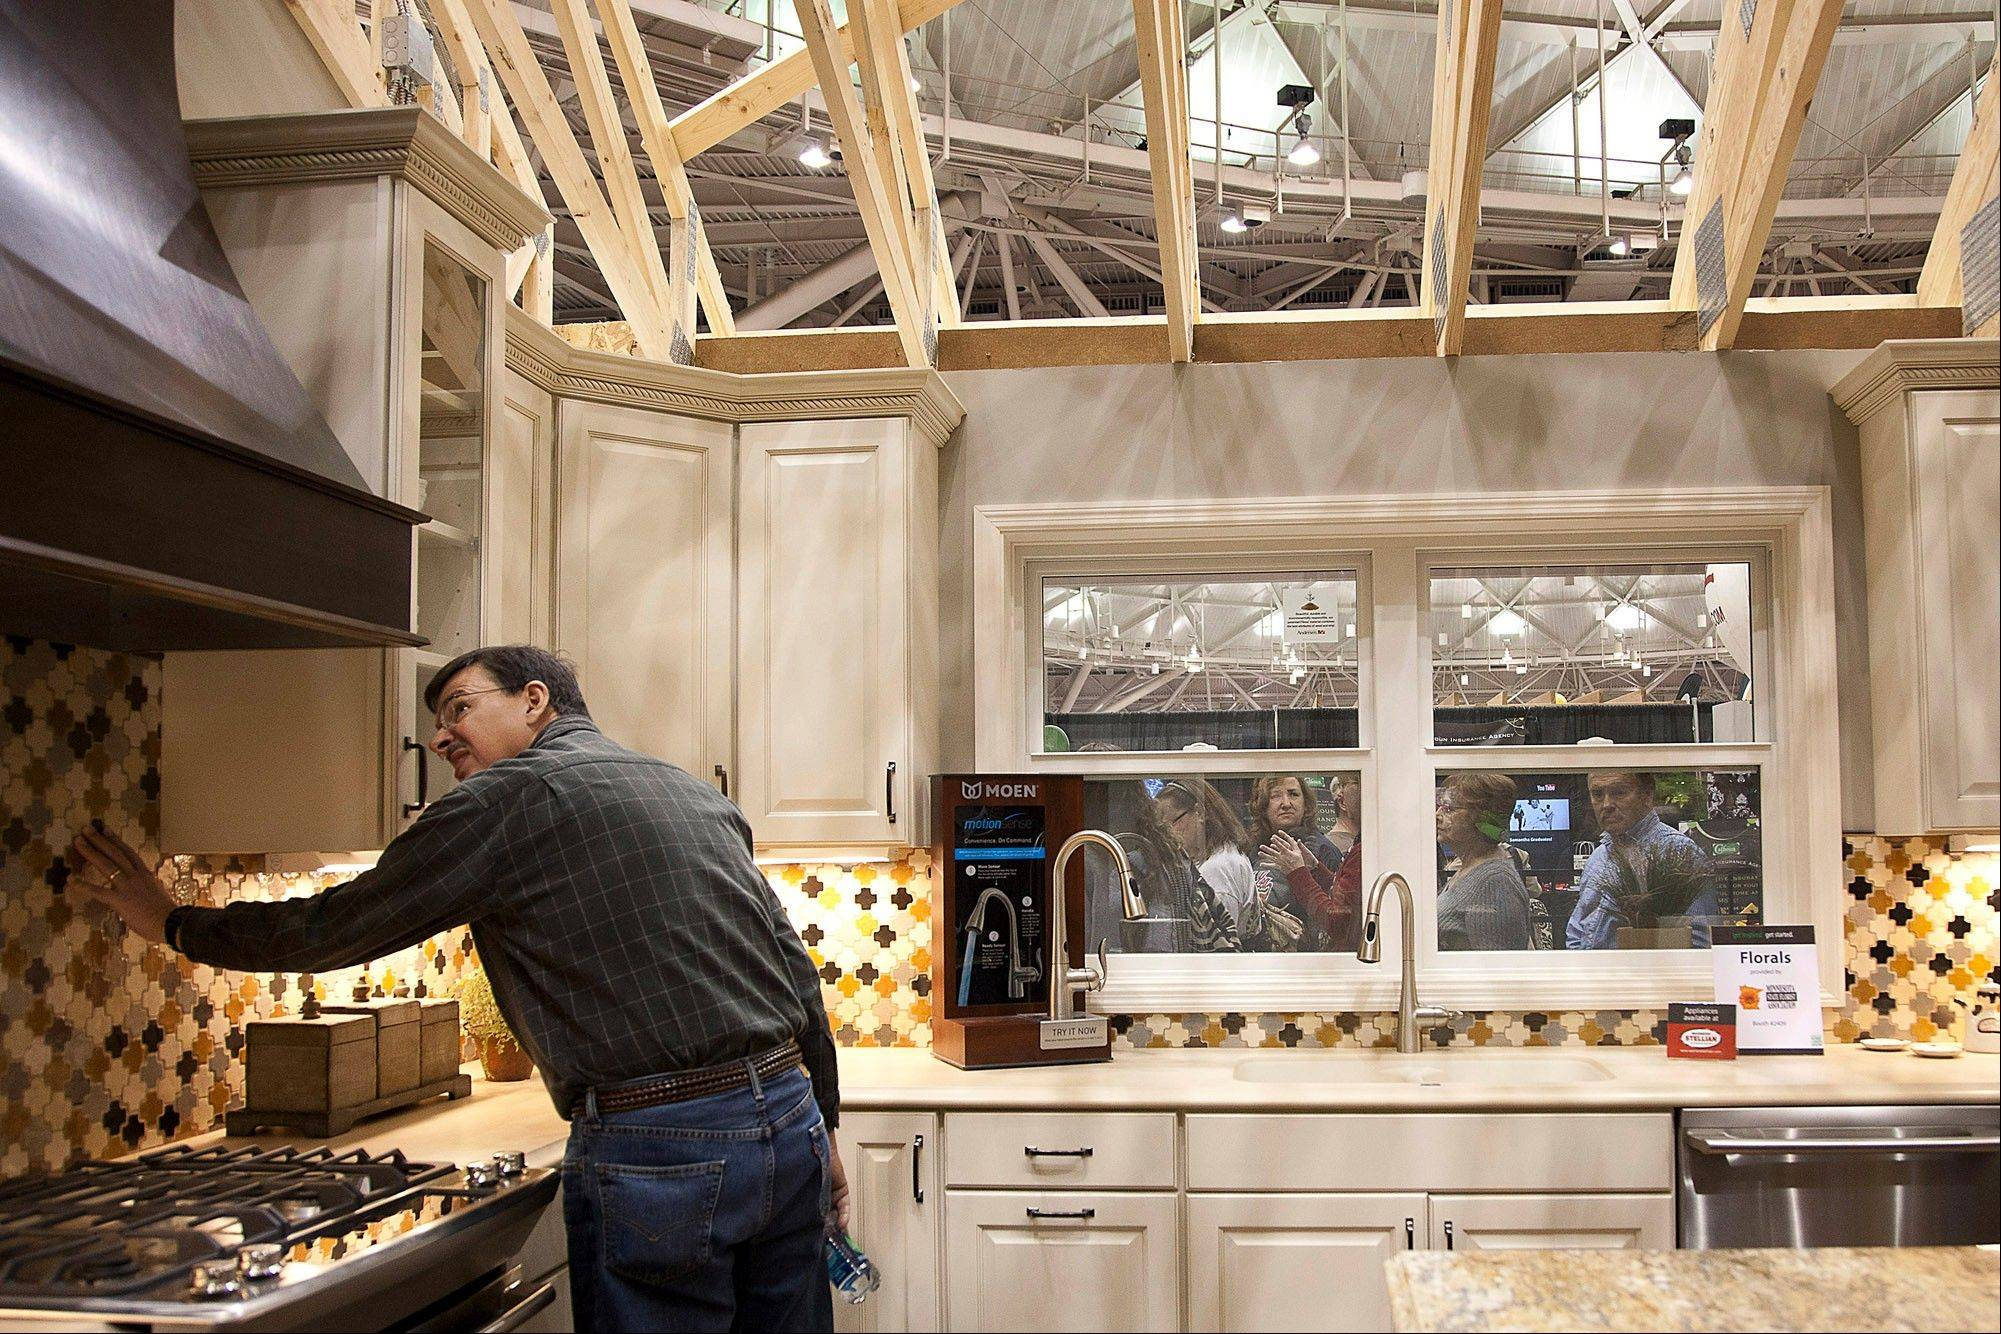 A man views the kitchen of a 1,700-square-foot �empty nester� layout called the Idea Home at the Minneapolis Home & Garden Show in Minneapolis.